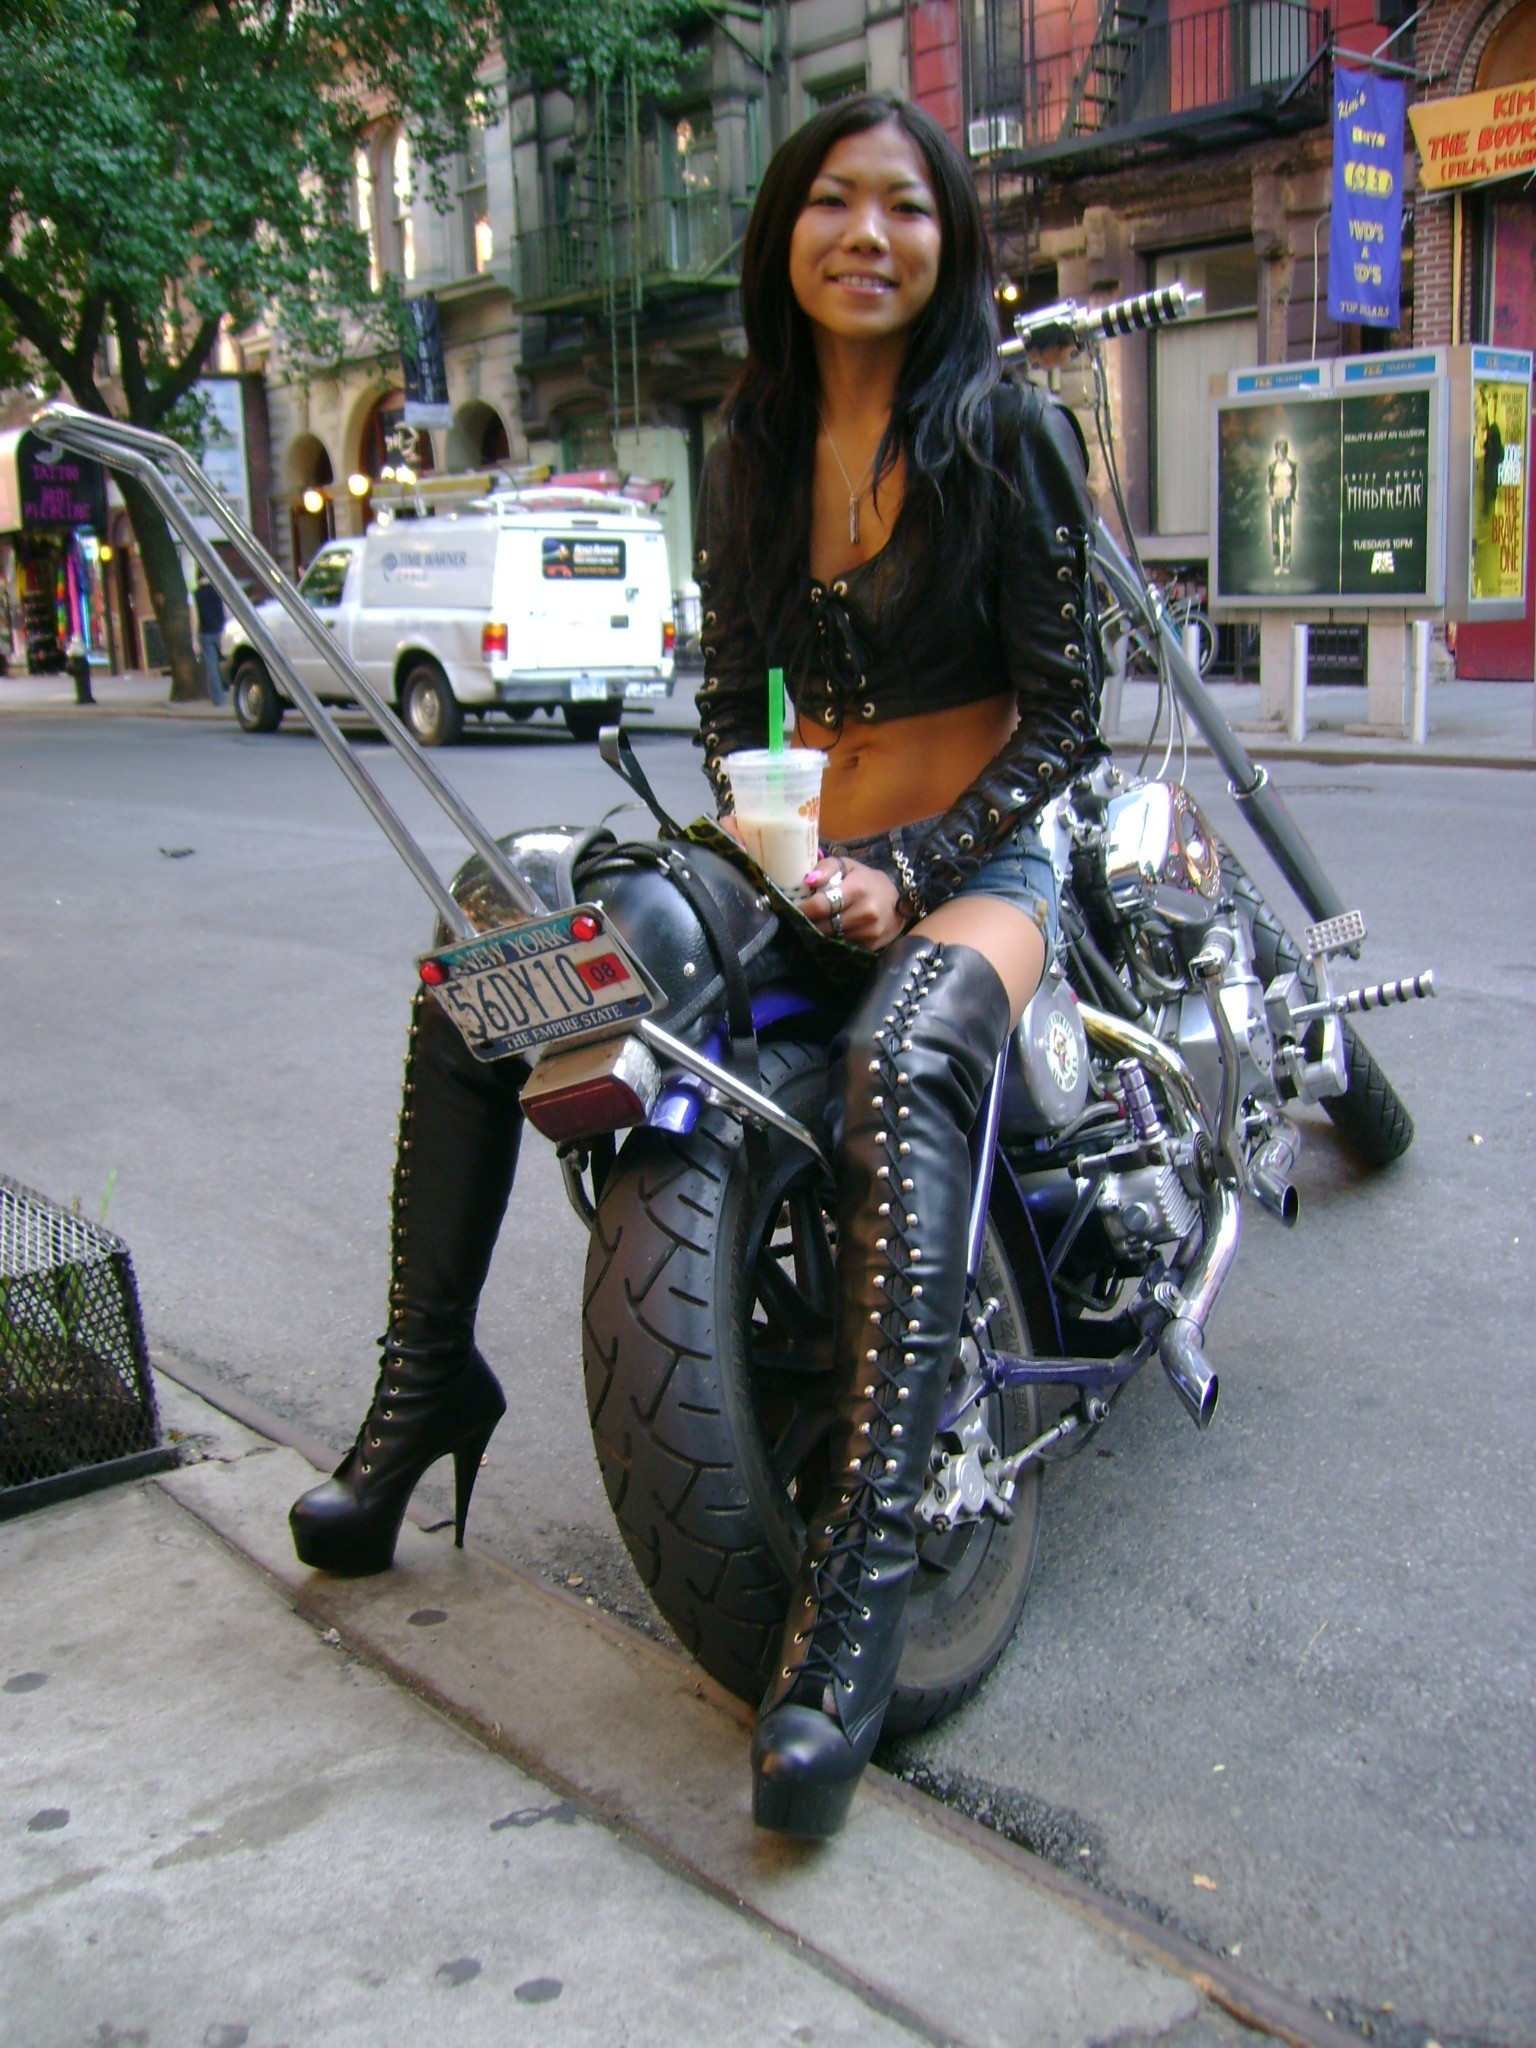 Hot Asian Biker Babe – Sept 20, 2007 | normalbob.com